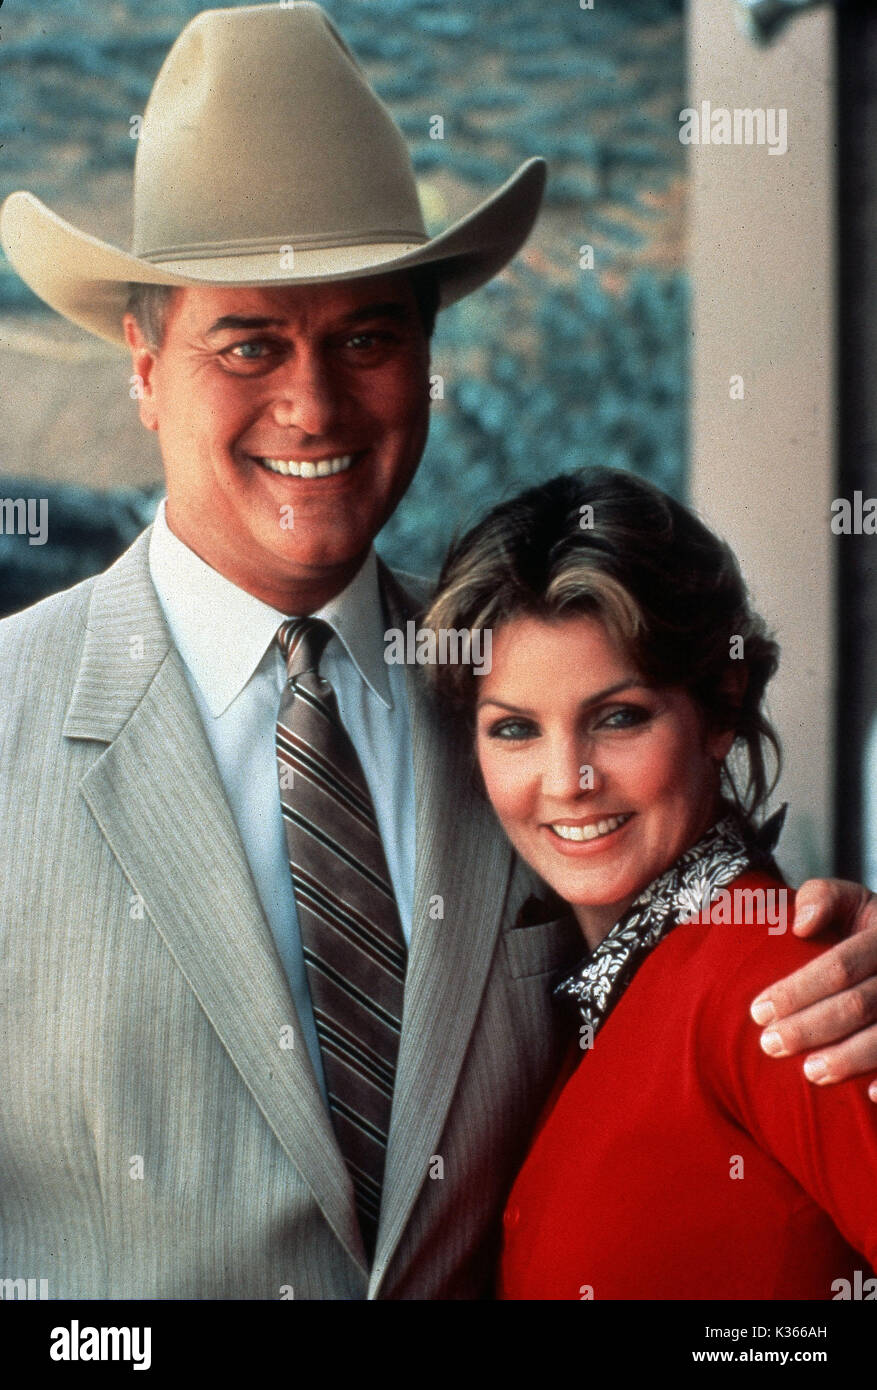 DALLAS [TV] LARRY HAGMAN as 'JR' EWING, PRISCILLA PRESLEY as Jenna Wade - Stock Image